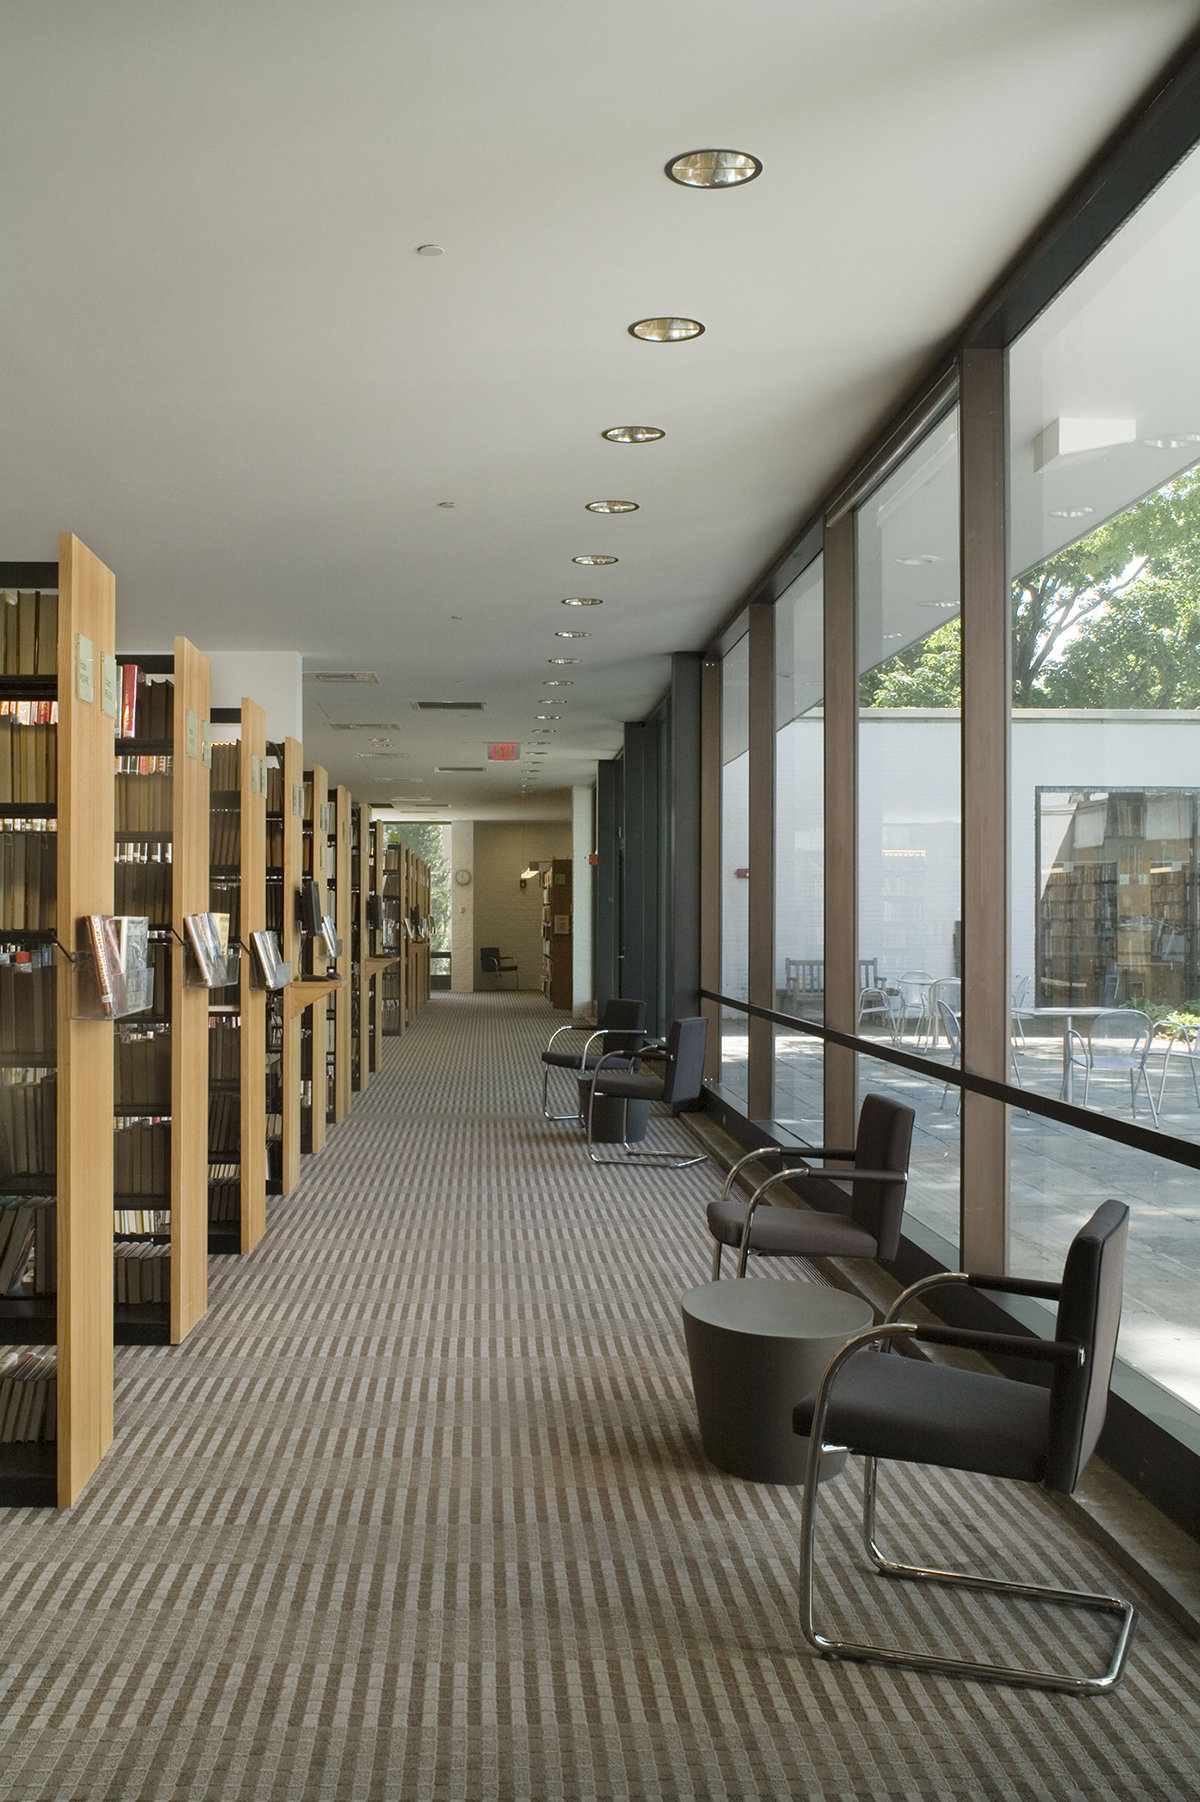 9 tskp wilton wilton library interior seating area next to aisles 1400 xxx q85